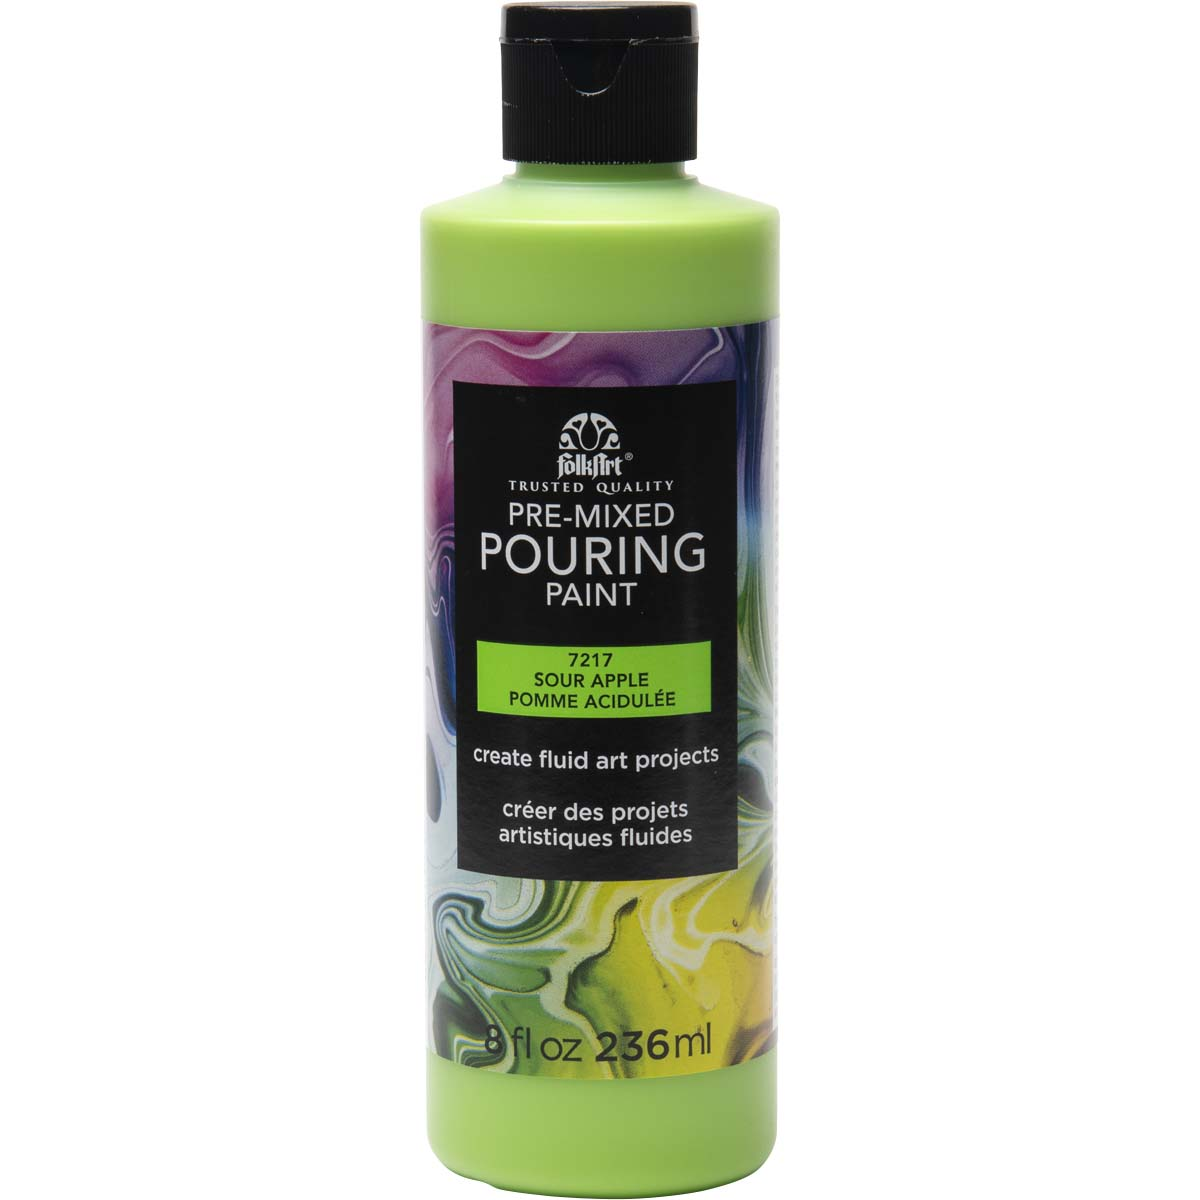 FolkArt ® Pre-mixed Pouring Paint - Sour Apple, 8 oz. - 7217